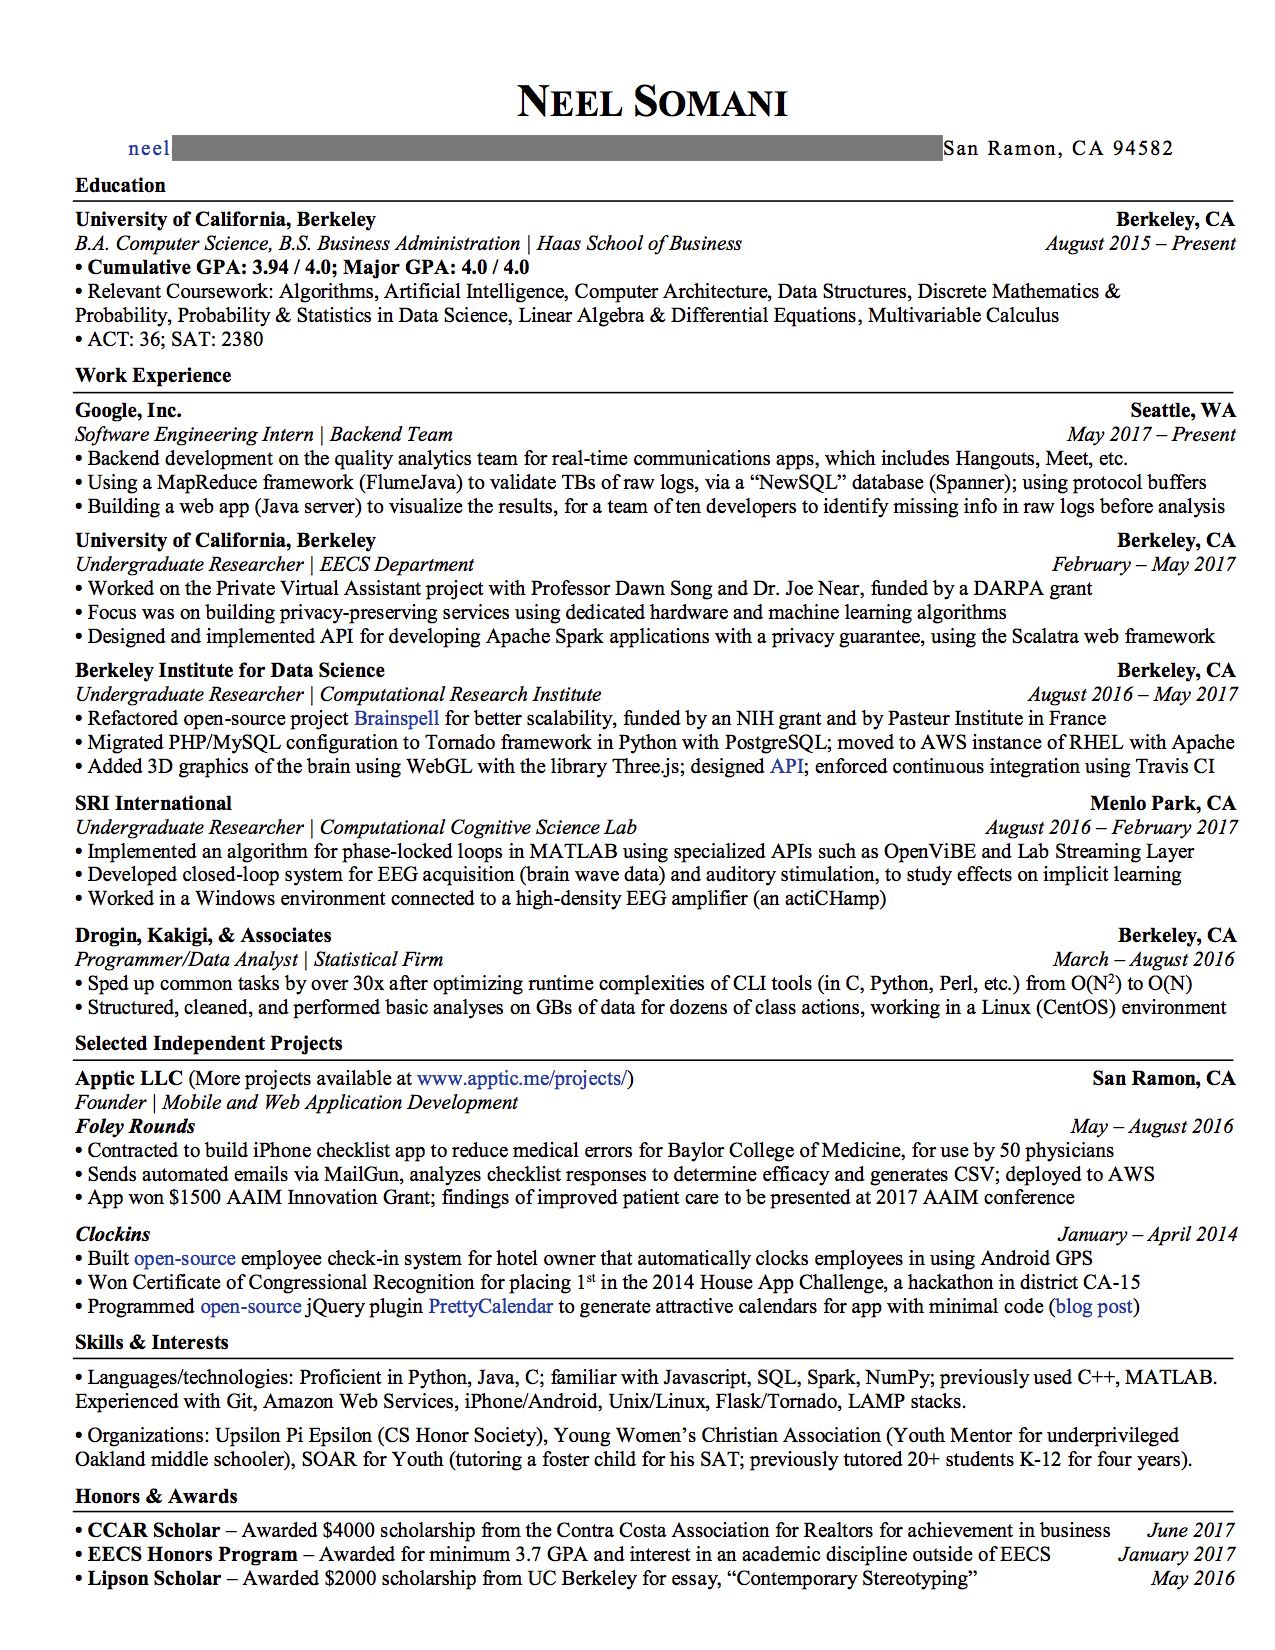 this resume got me internship offers from google nsa more